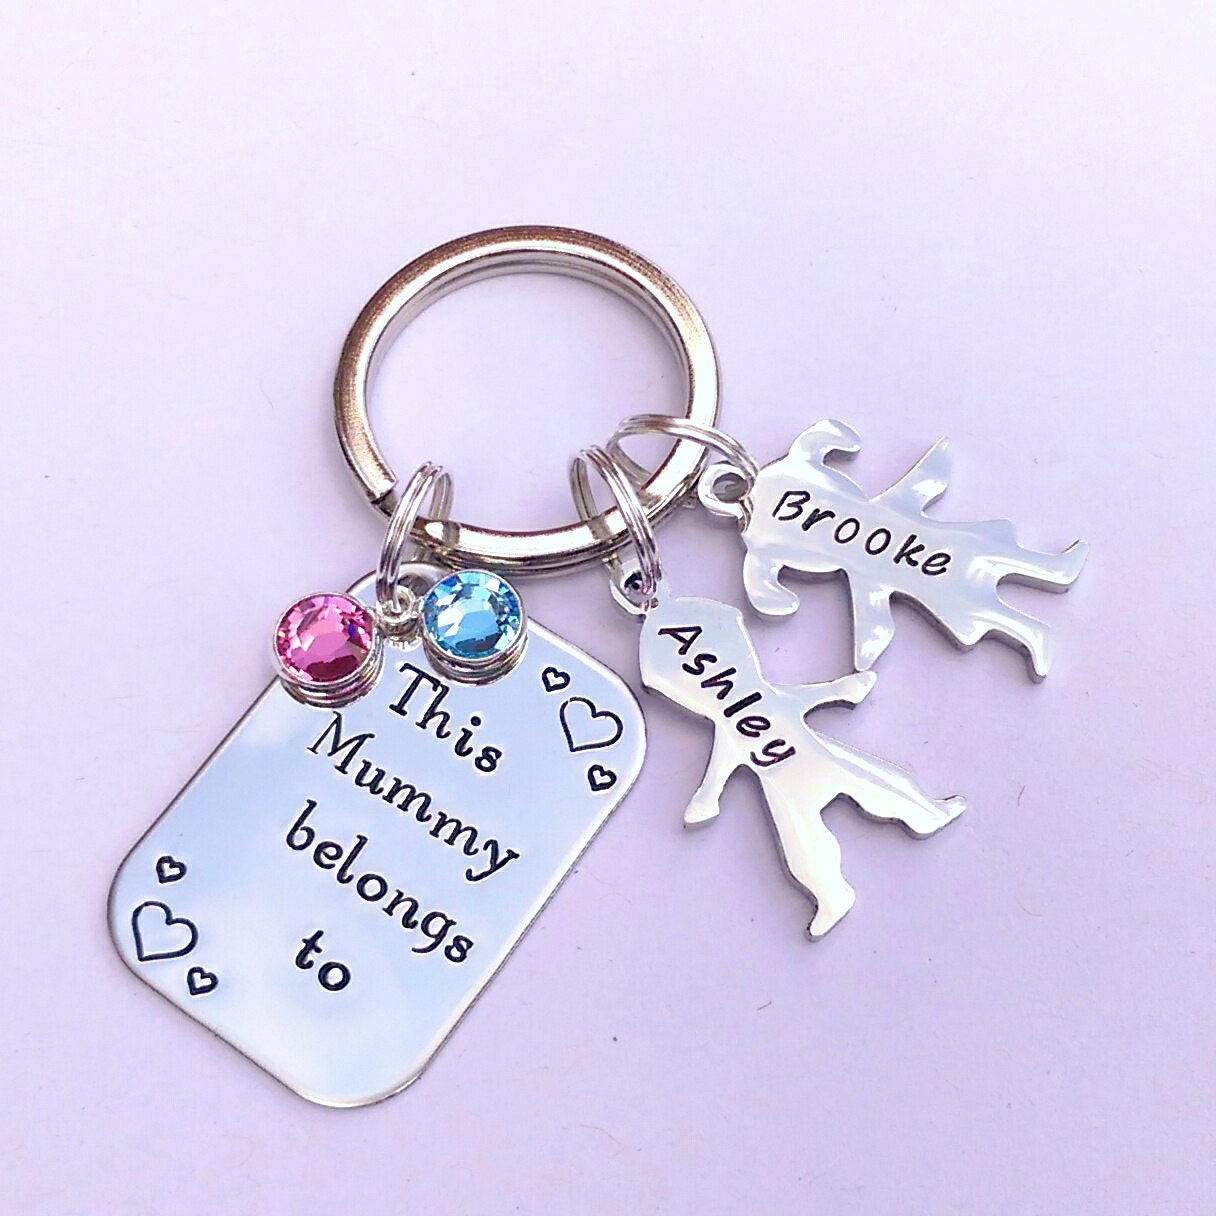 Personalised gift for mum - personalised keyring for mum - birthday gift for mum - mum keyring - mummy gift - new mummy gift - mum present